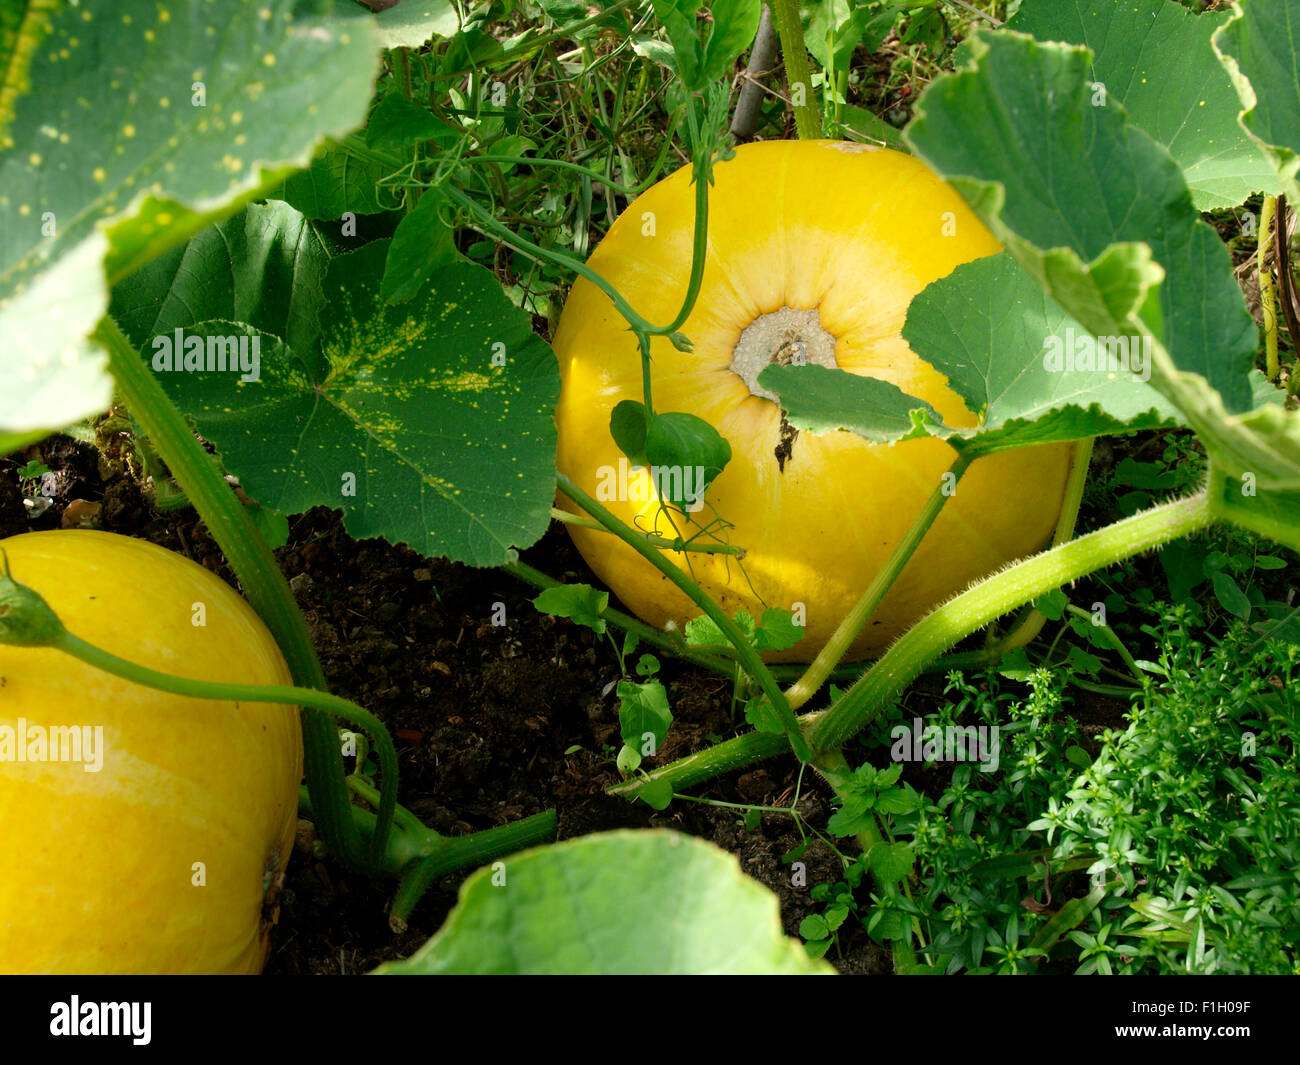 Pumpkins growing, UK - Stock Image